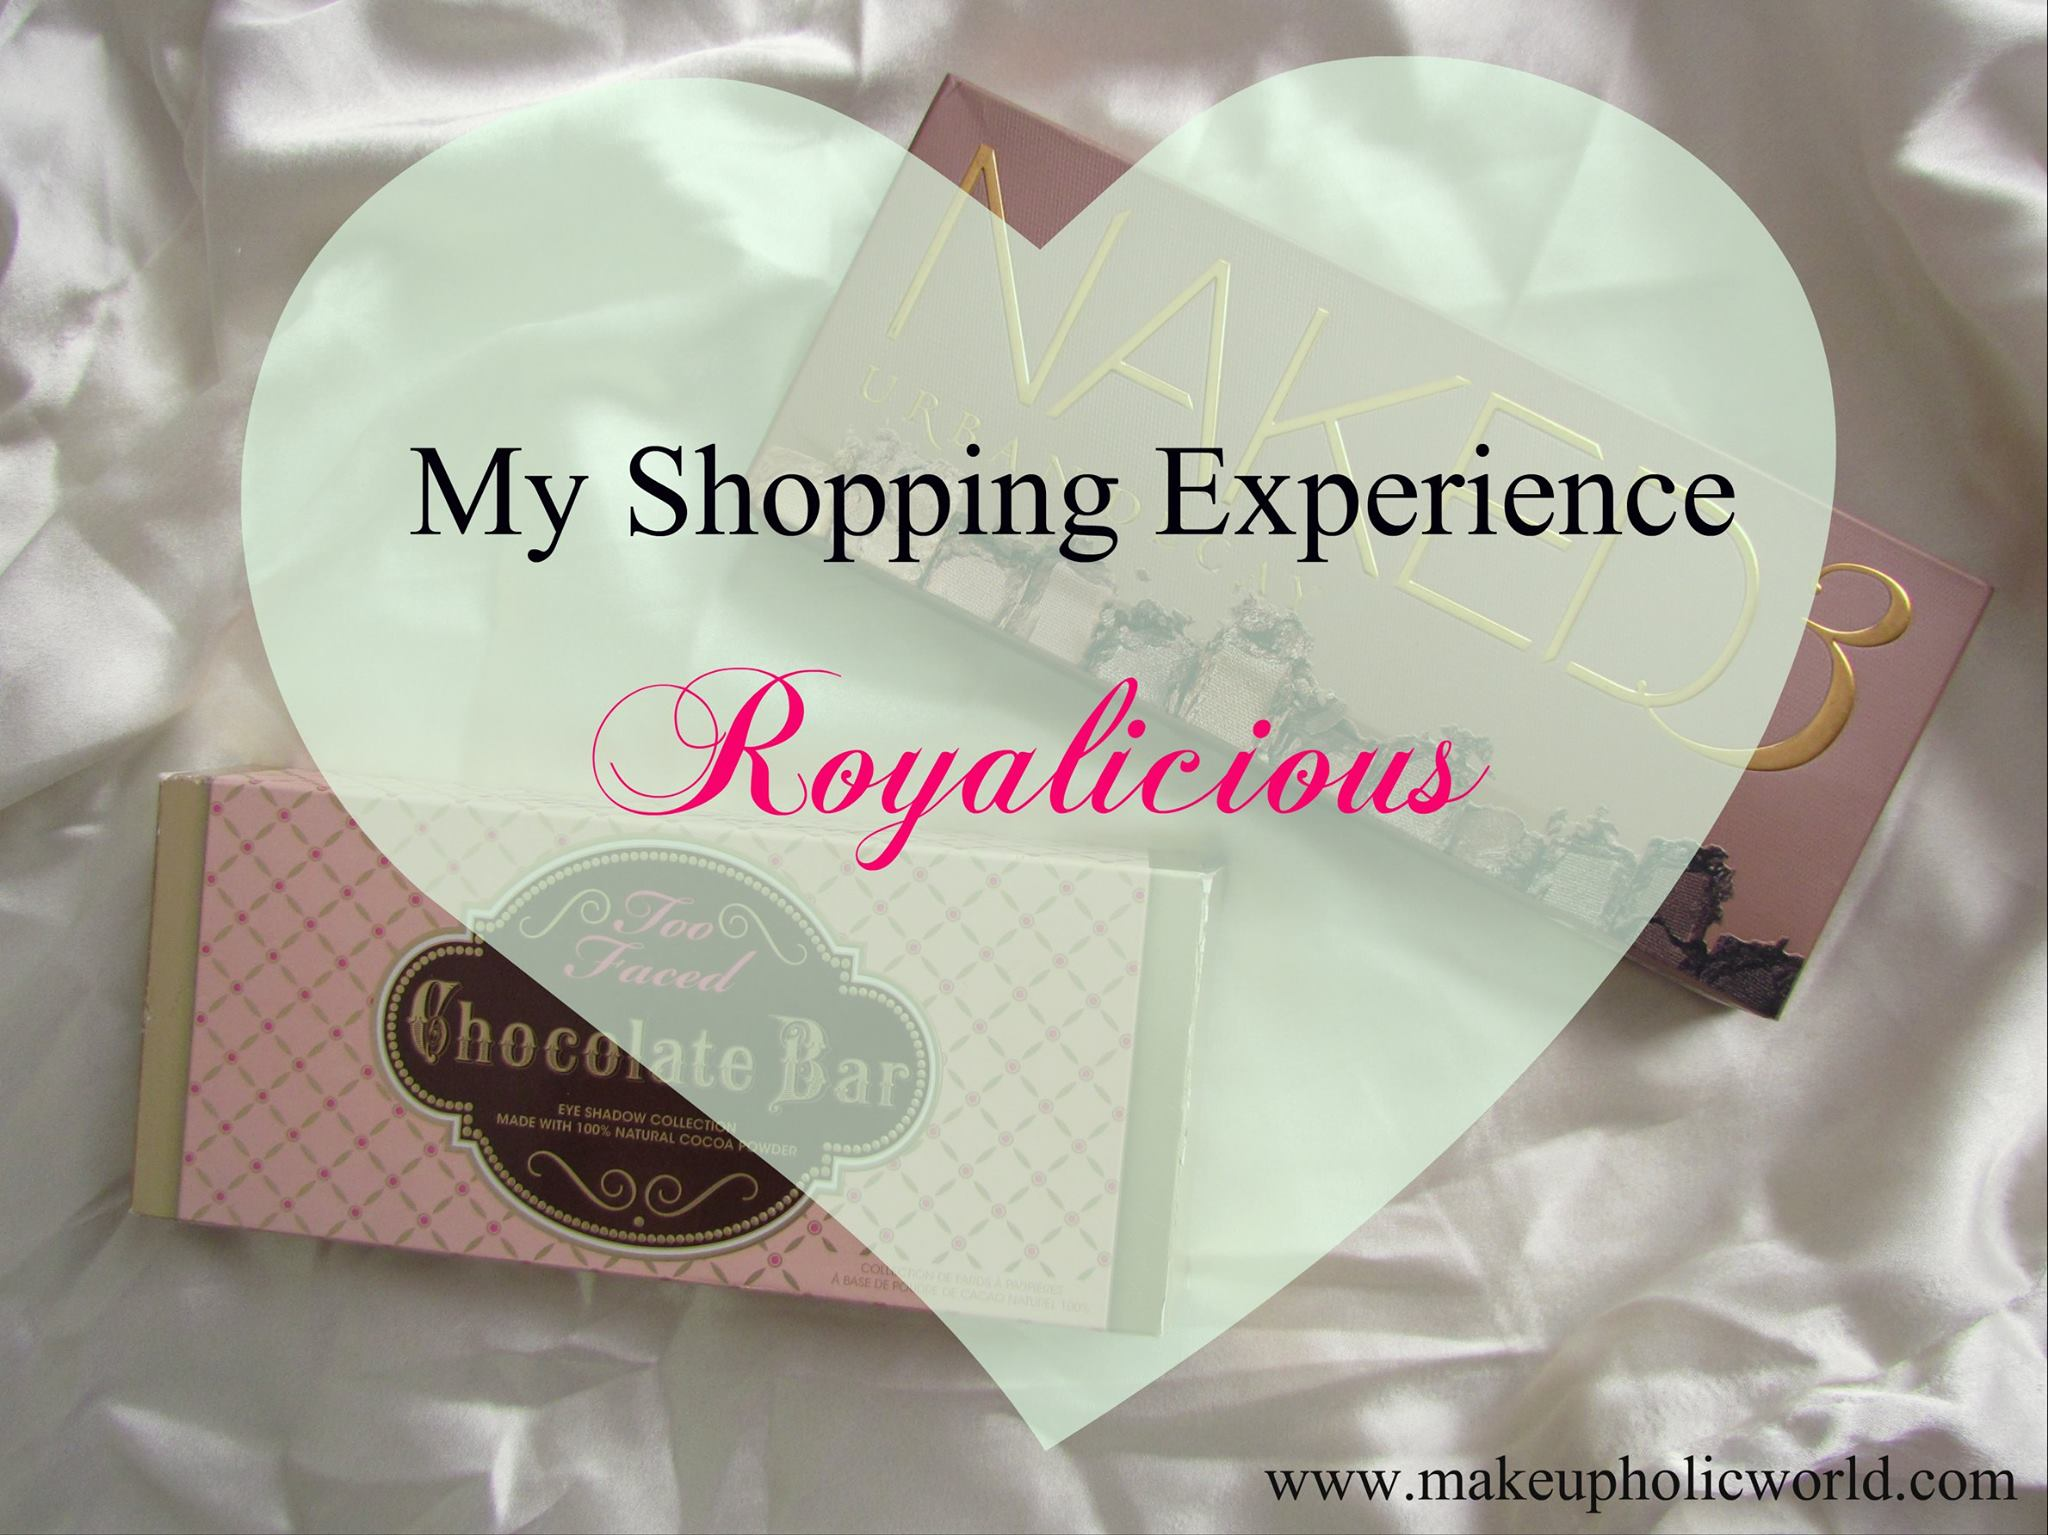 Looking to Purchase Urban Decay & Too Faced Products in India? Read my full haul post from Royalicious1